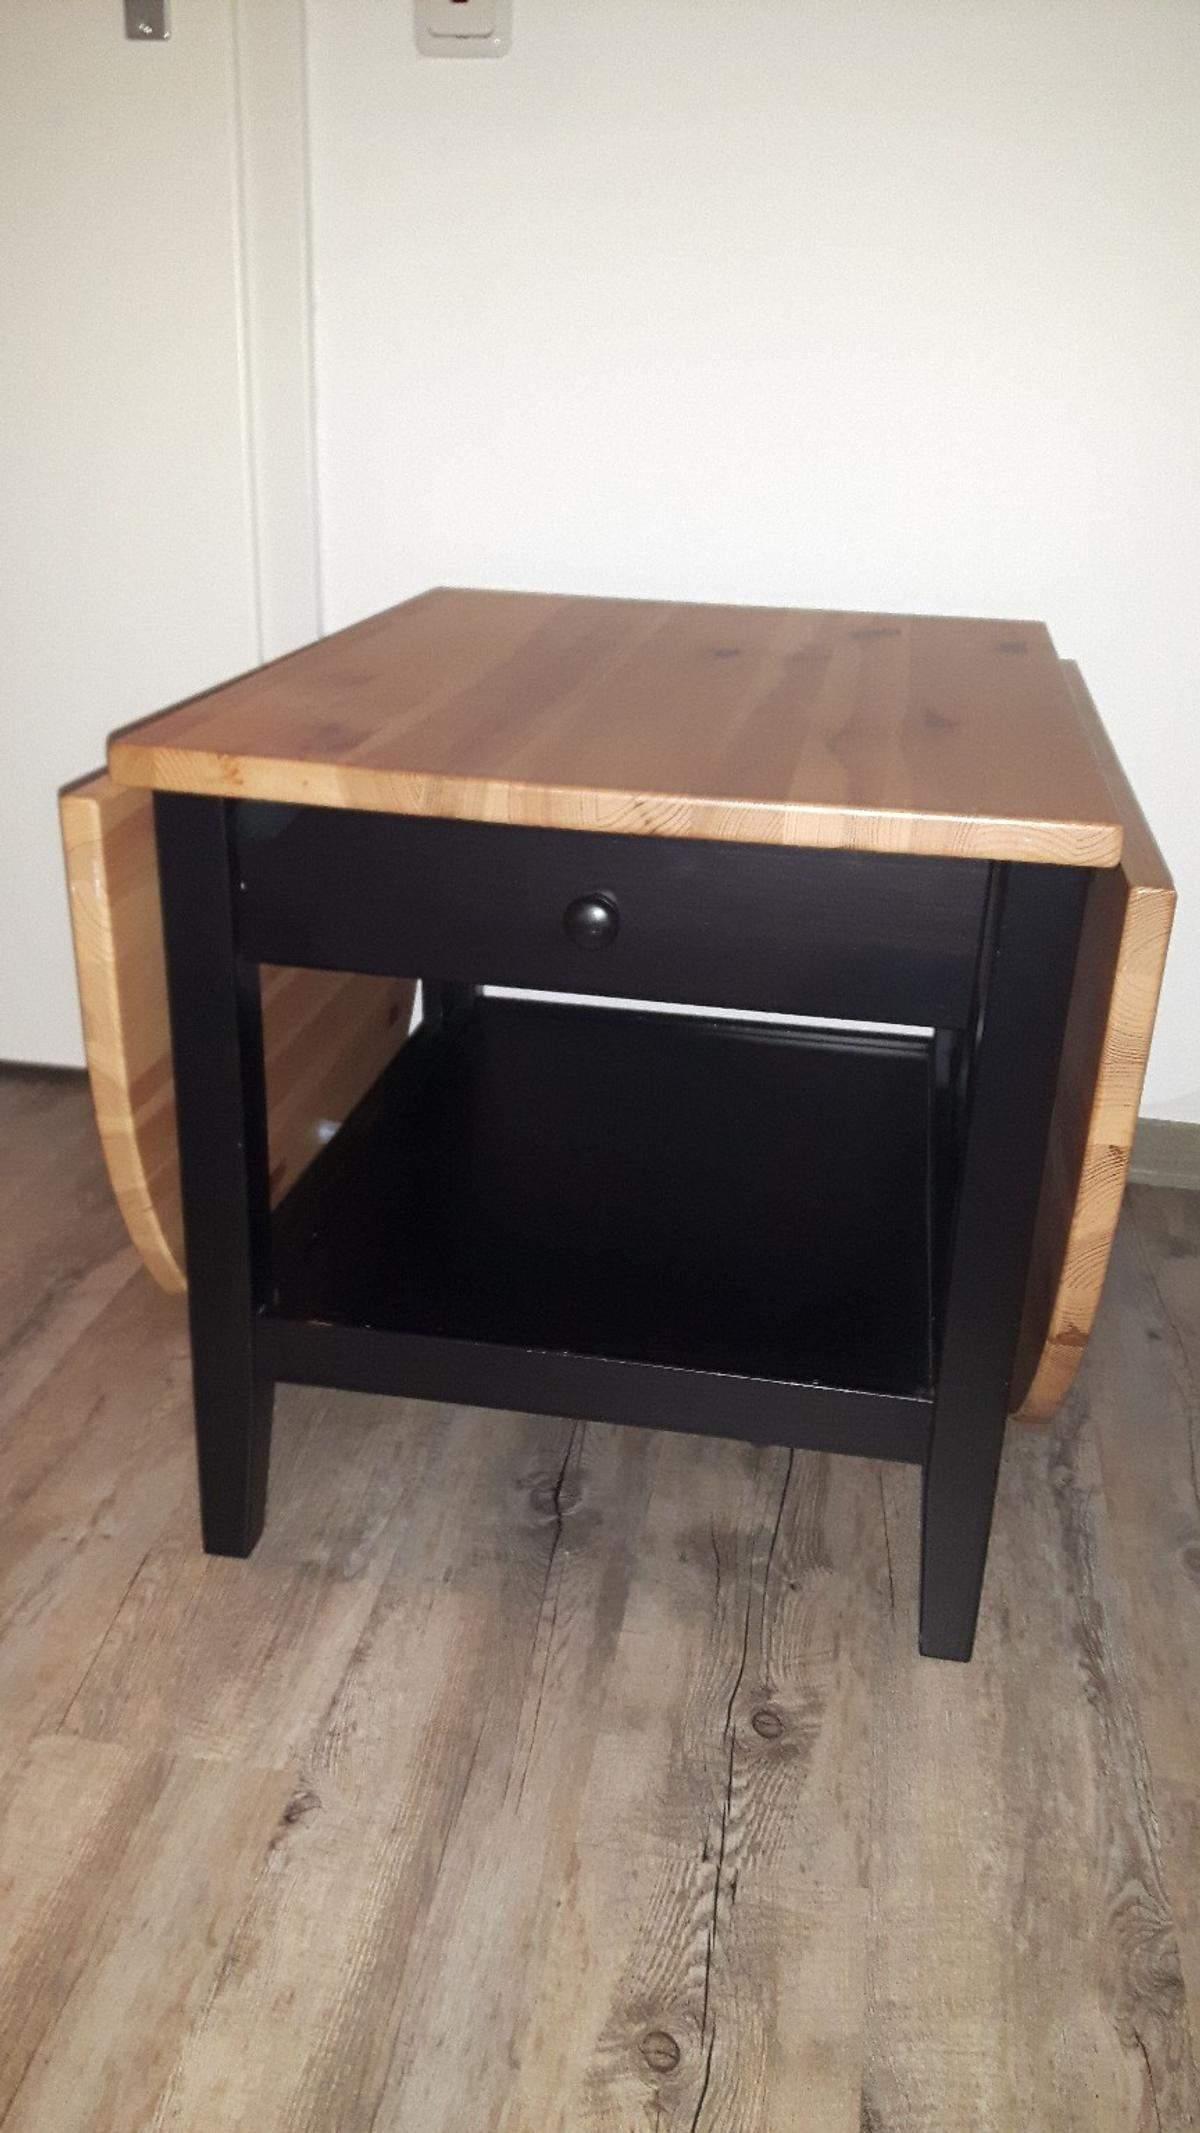 Ikea Couchtisch Arkelstorp In 51377 Leverkusen For 50 00 For Sale Shpock